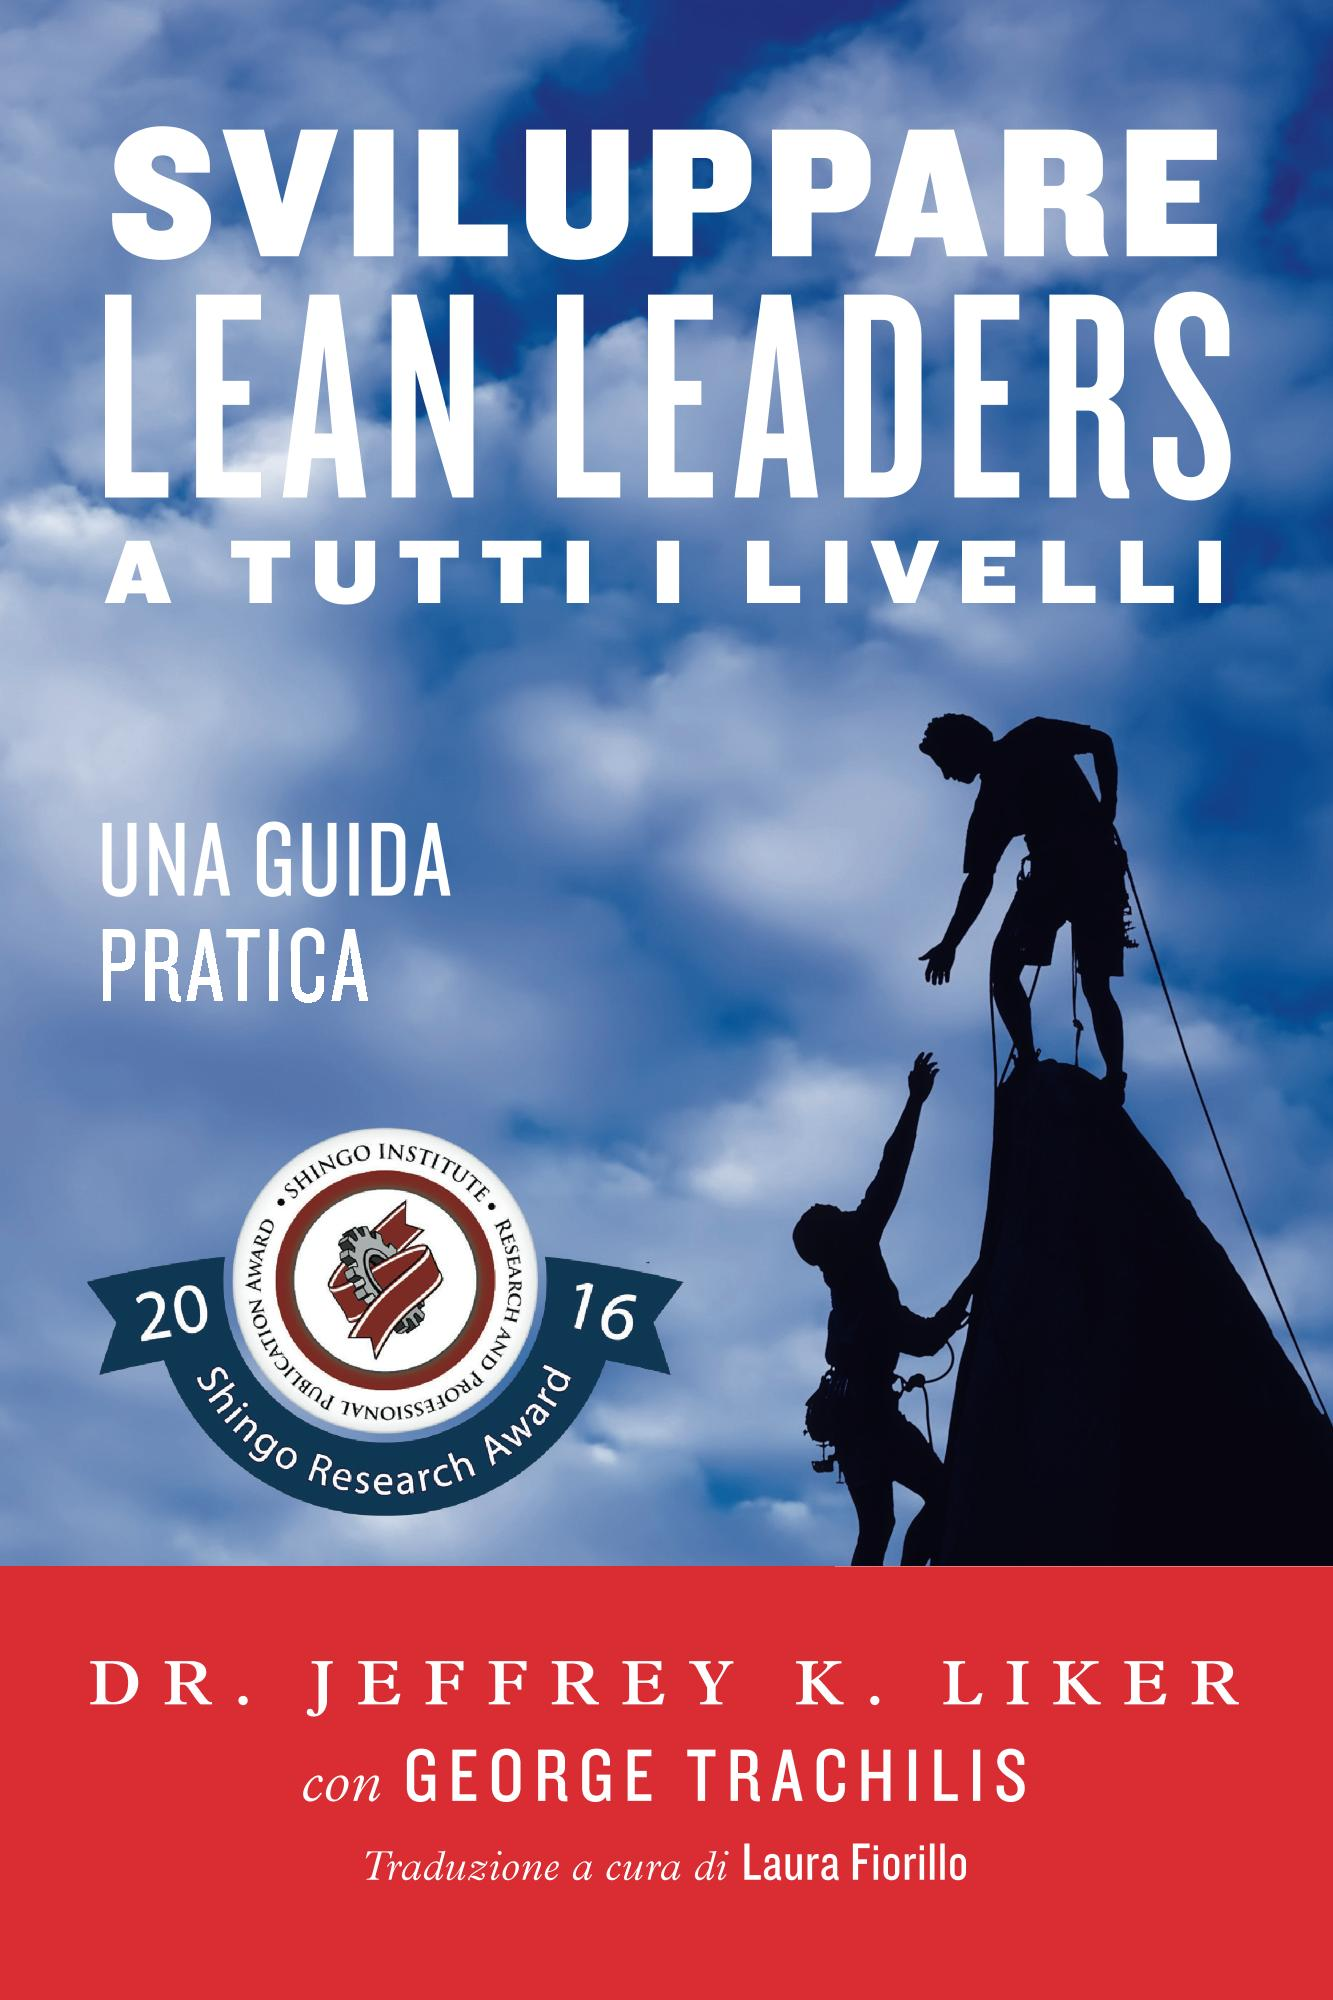 Developing Lean Leaders at All Levels by prof.Jeff Liker - now in Italian!